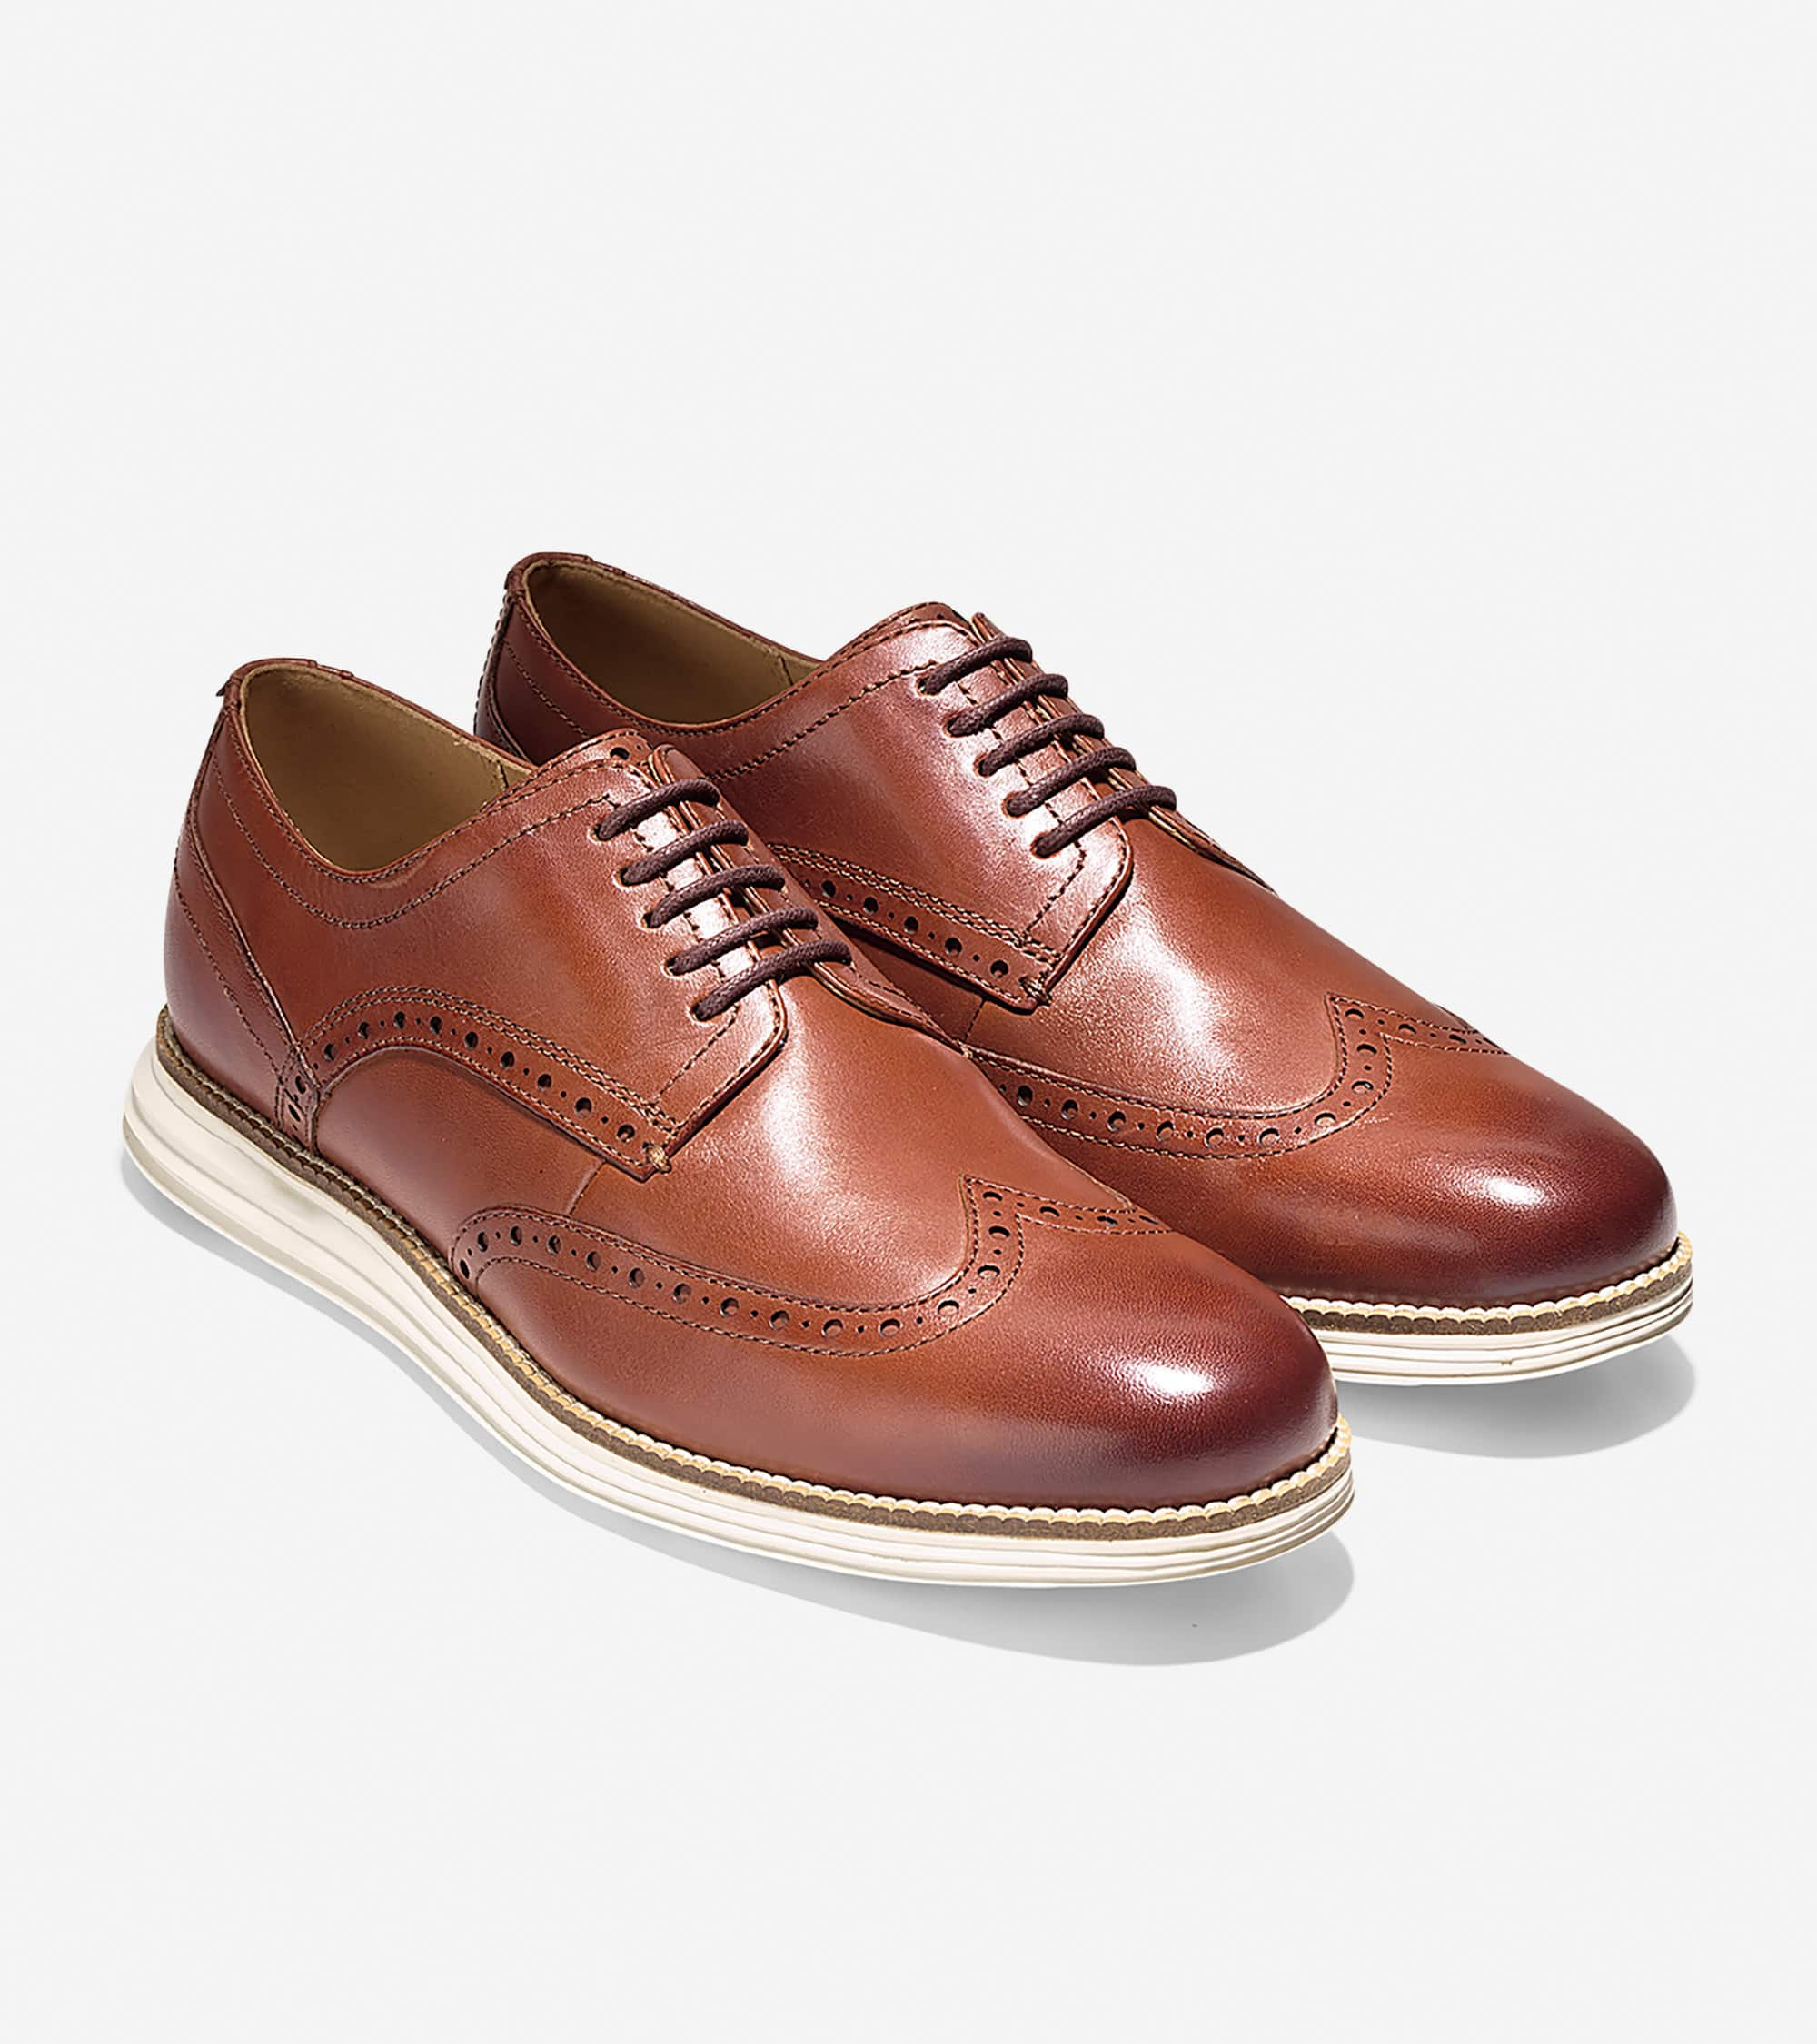 Cole Haan Men's Original Grand Wingtip Oxford Shoe $89.99 + Free Shipping @ Costco